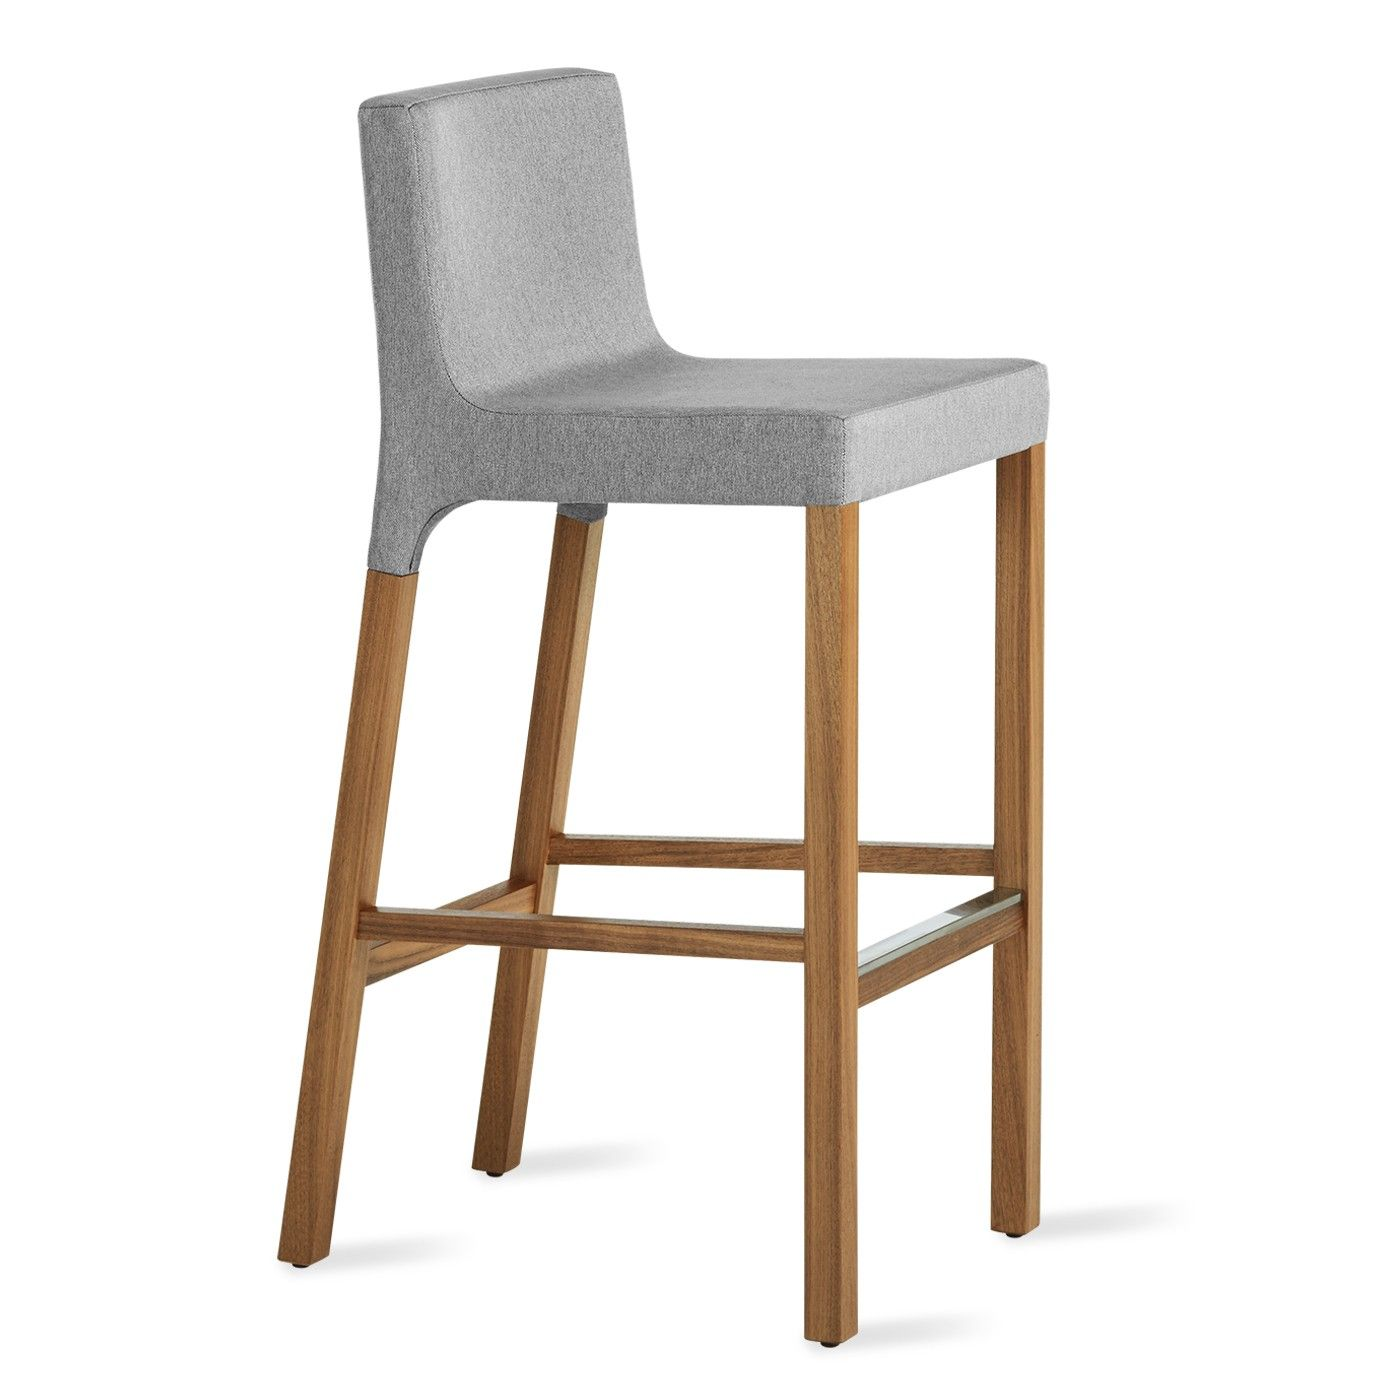 Knicker Modern Bar Stool - Pewter Grey